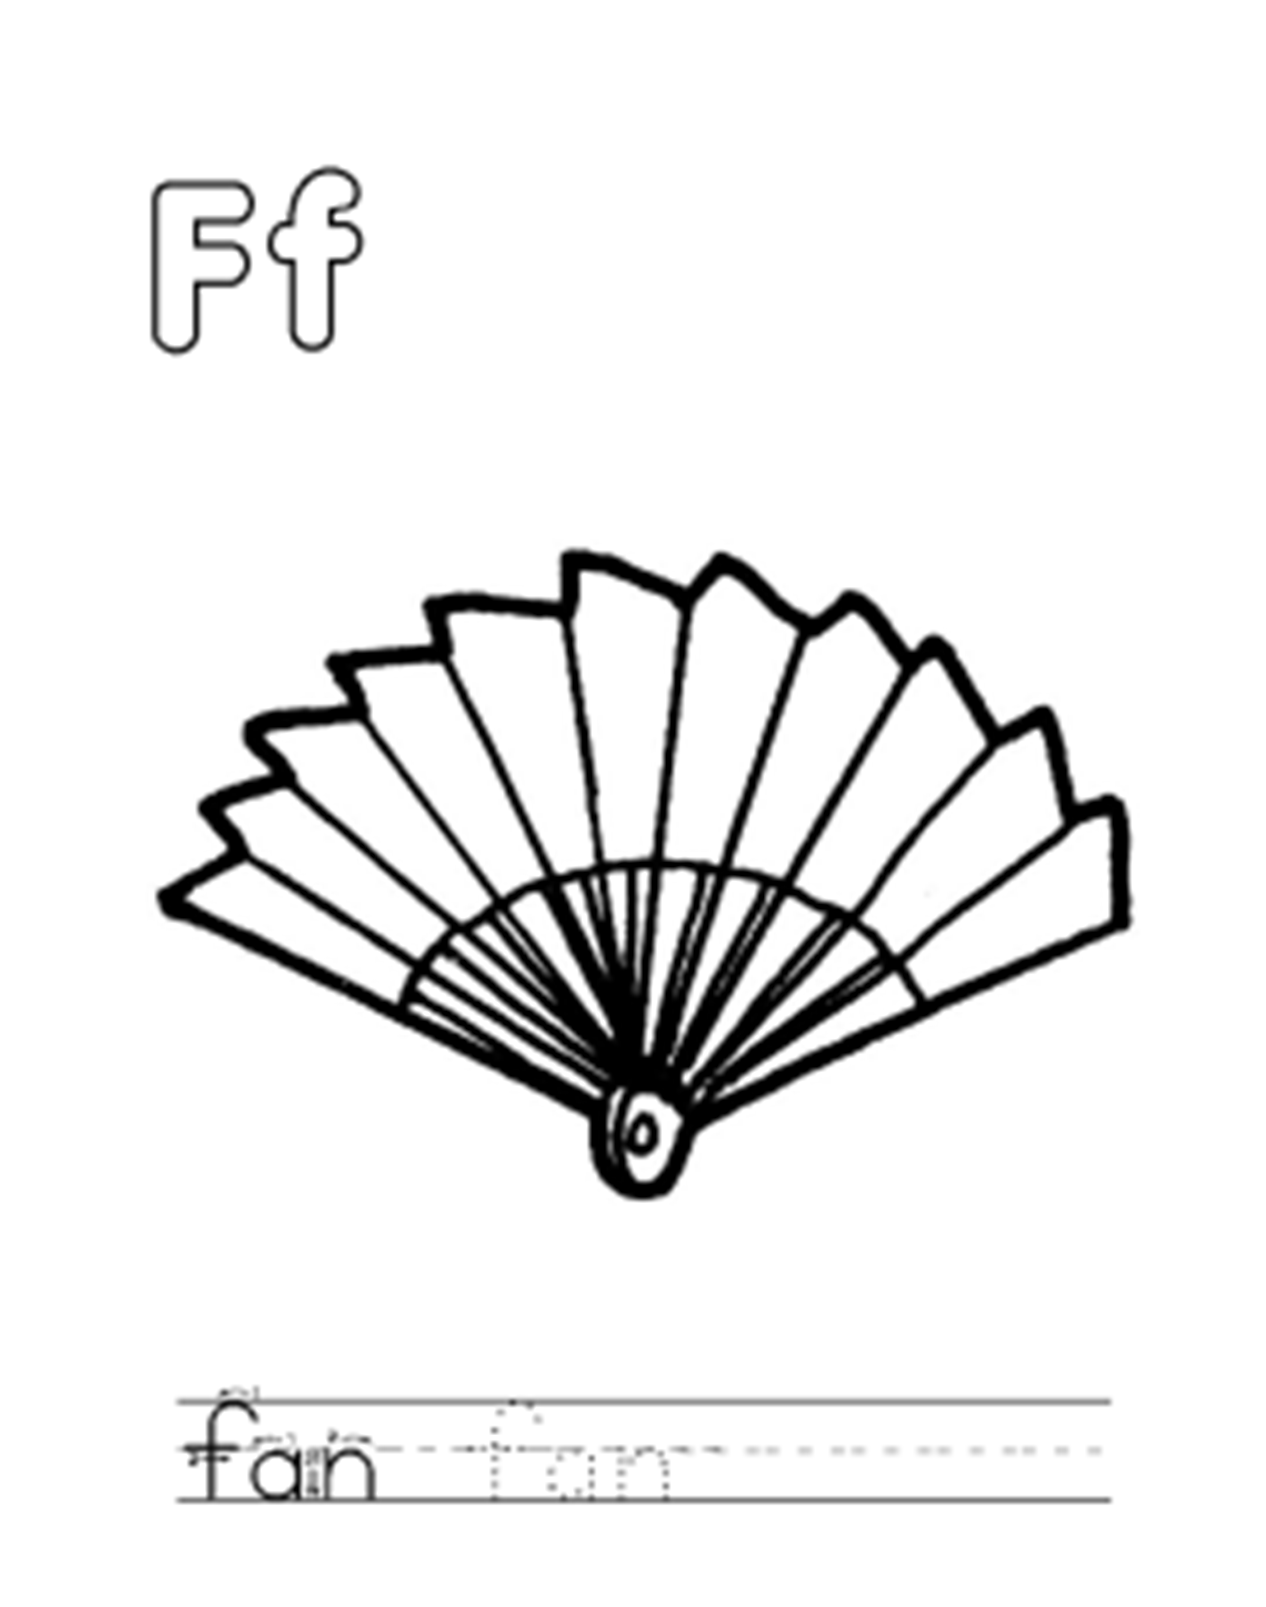 fan coloring page - fan coloring page az coloring pages